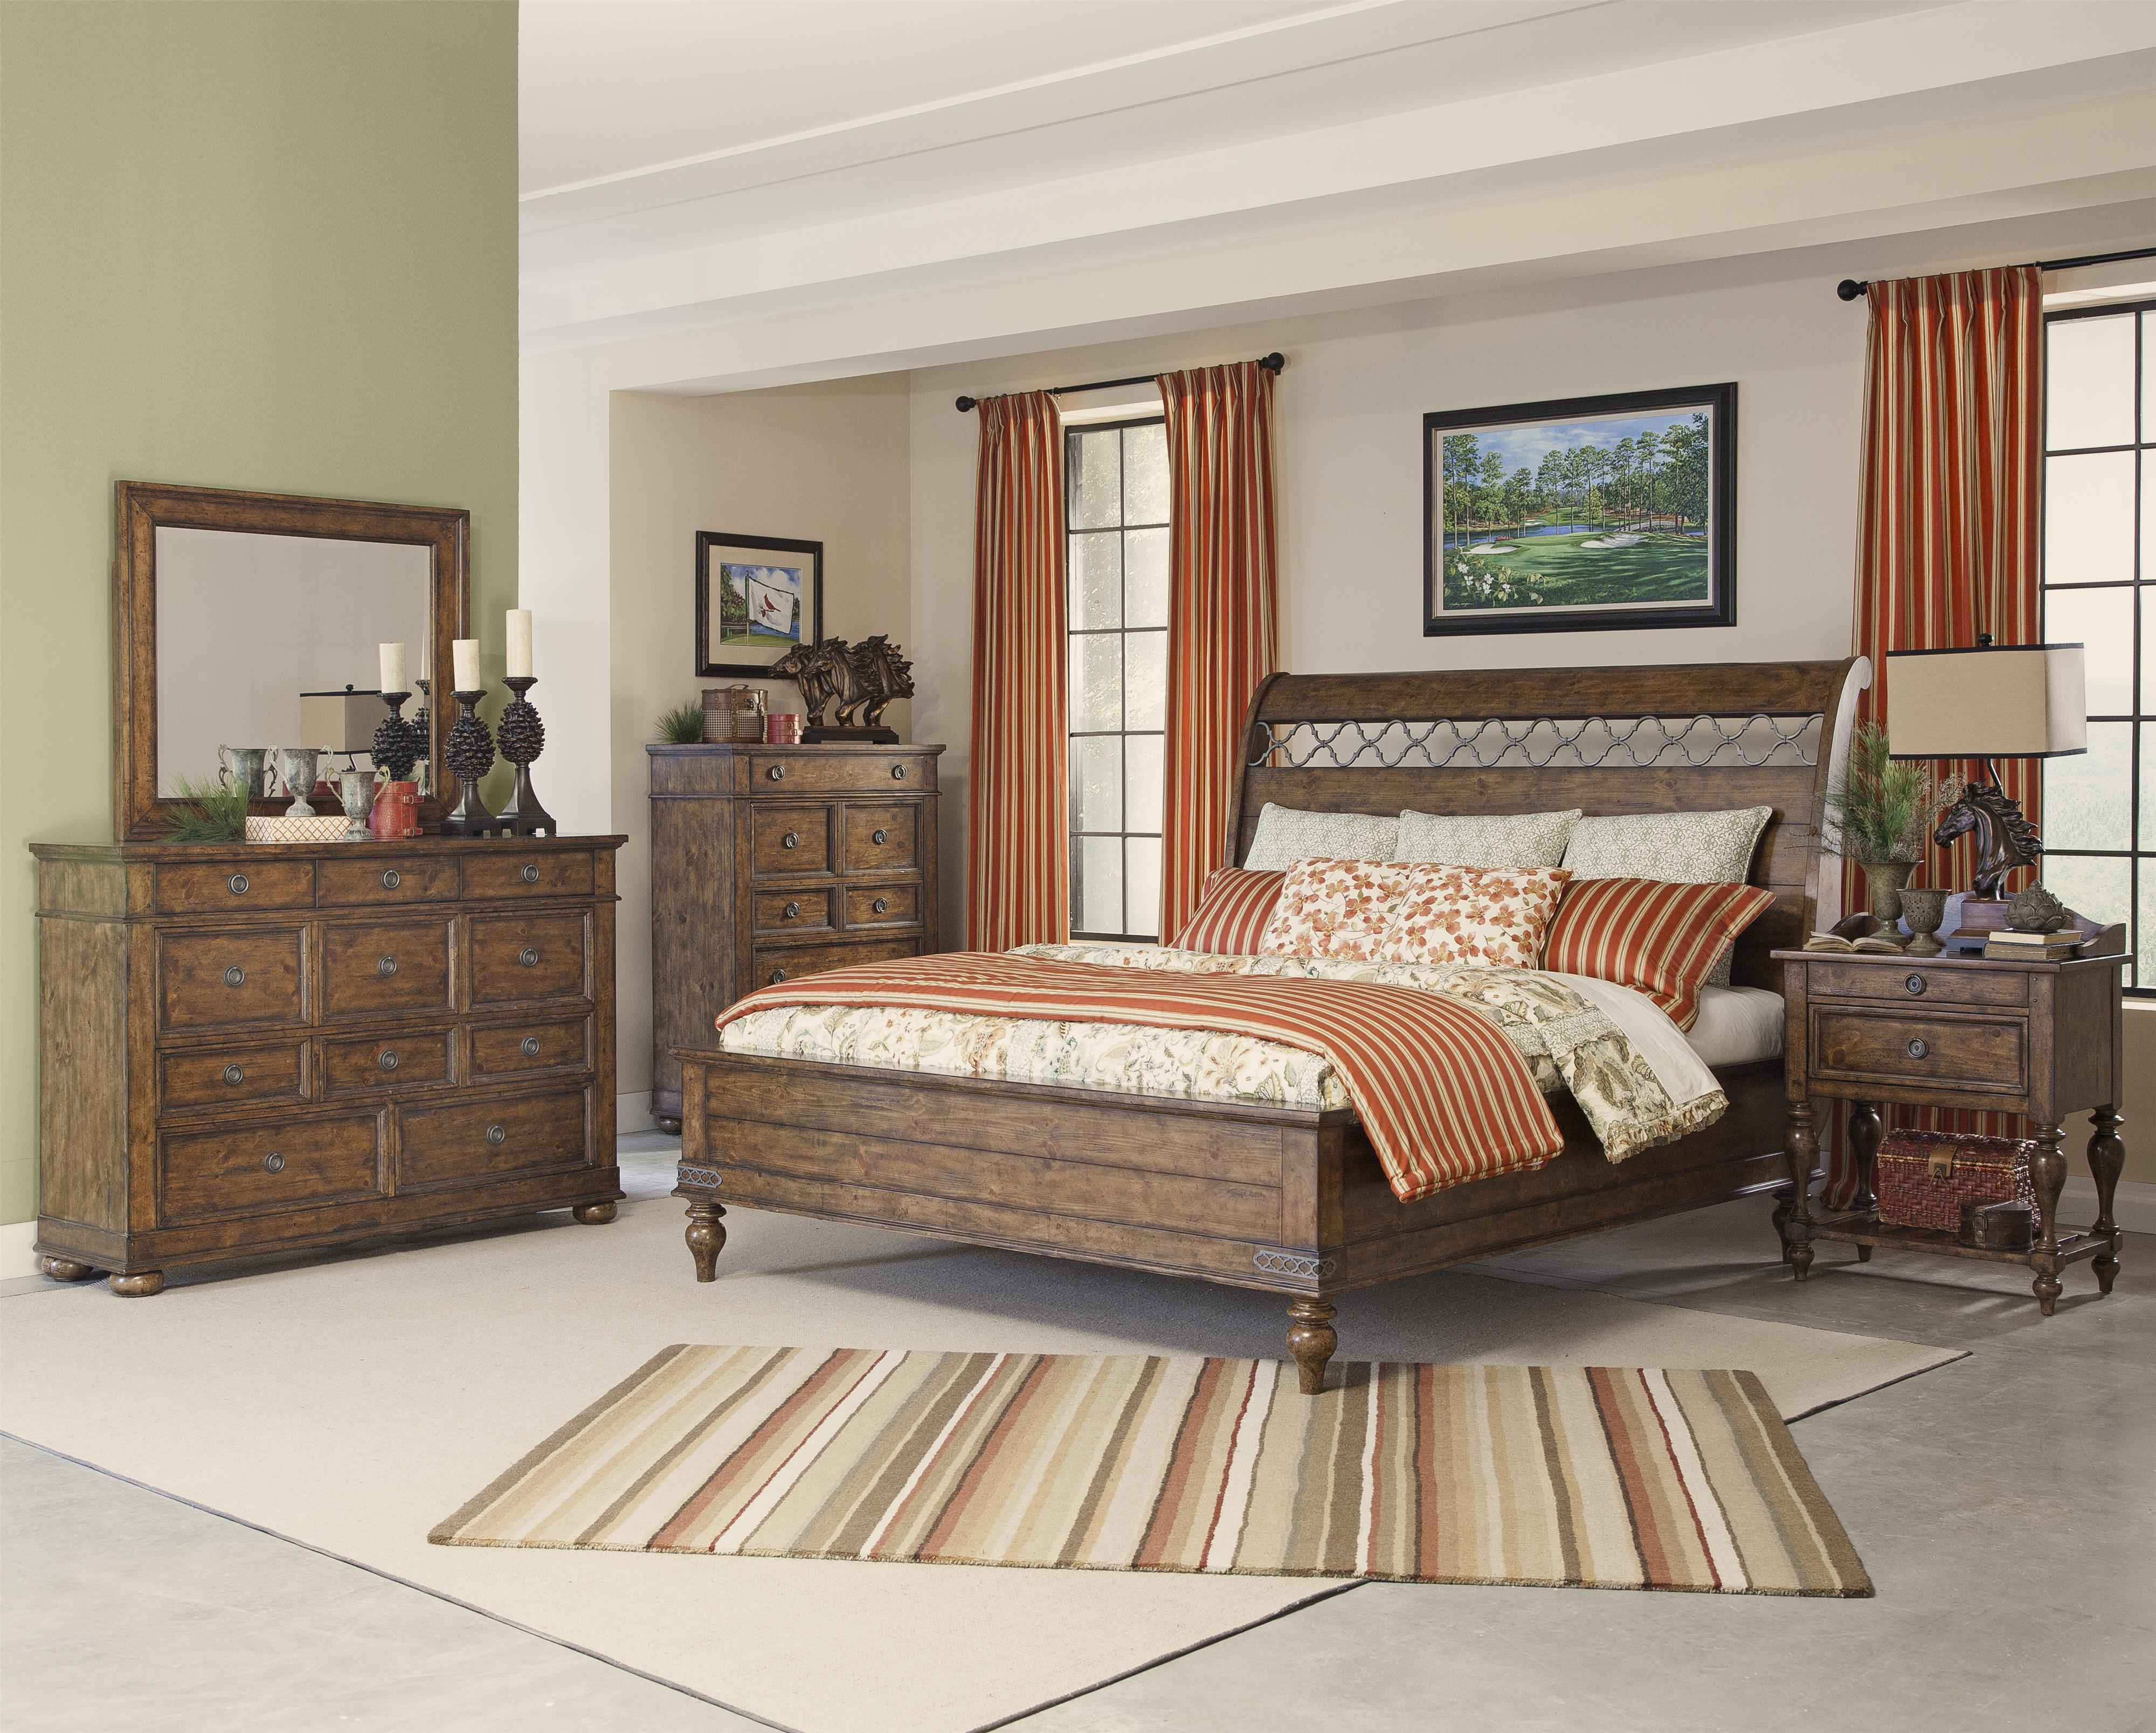 Carolina Preserves By Klaussner Southern Pines Queen Bedroom Group Ivan Smith Furniture